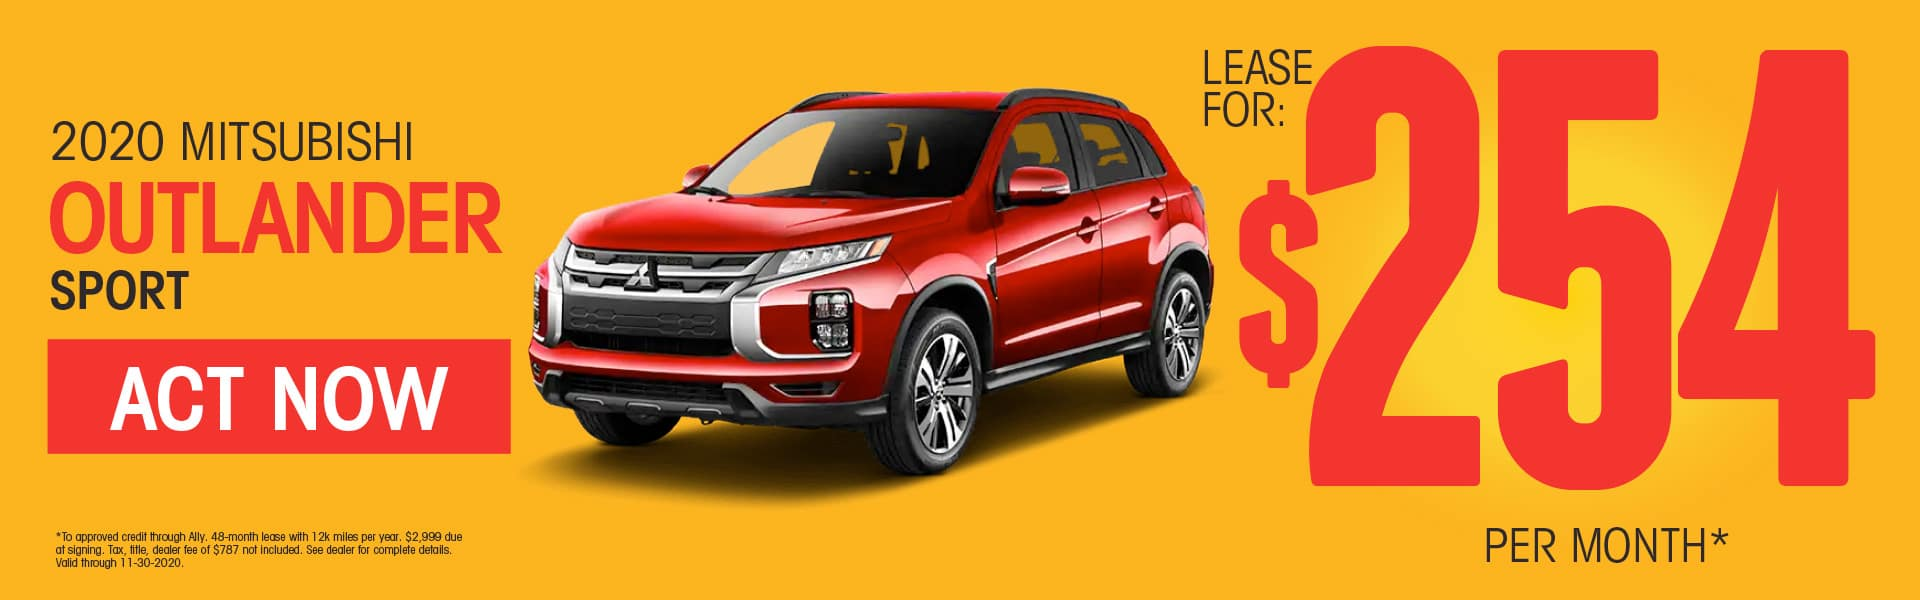 2020 Mitsubishi Outlander Sport Lease for $254 per month* SHOP NOW